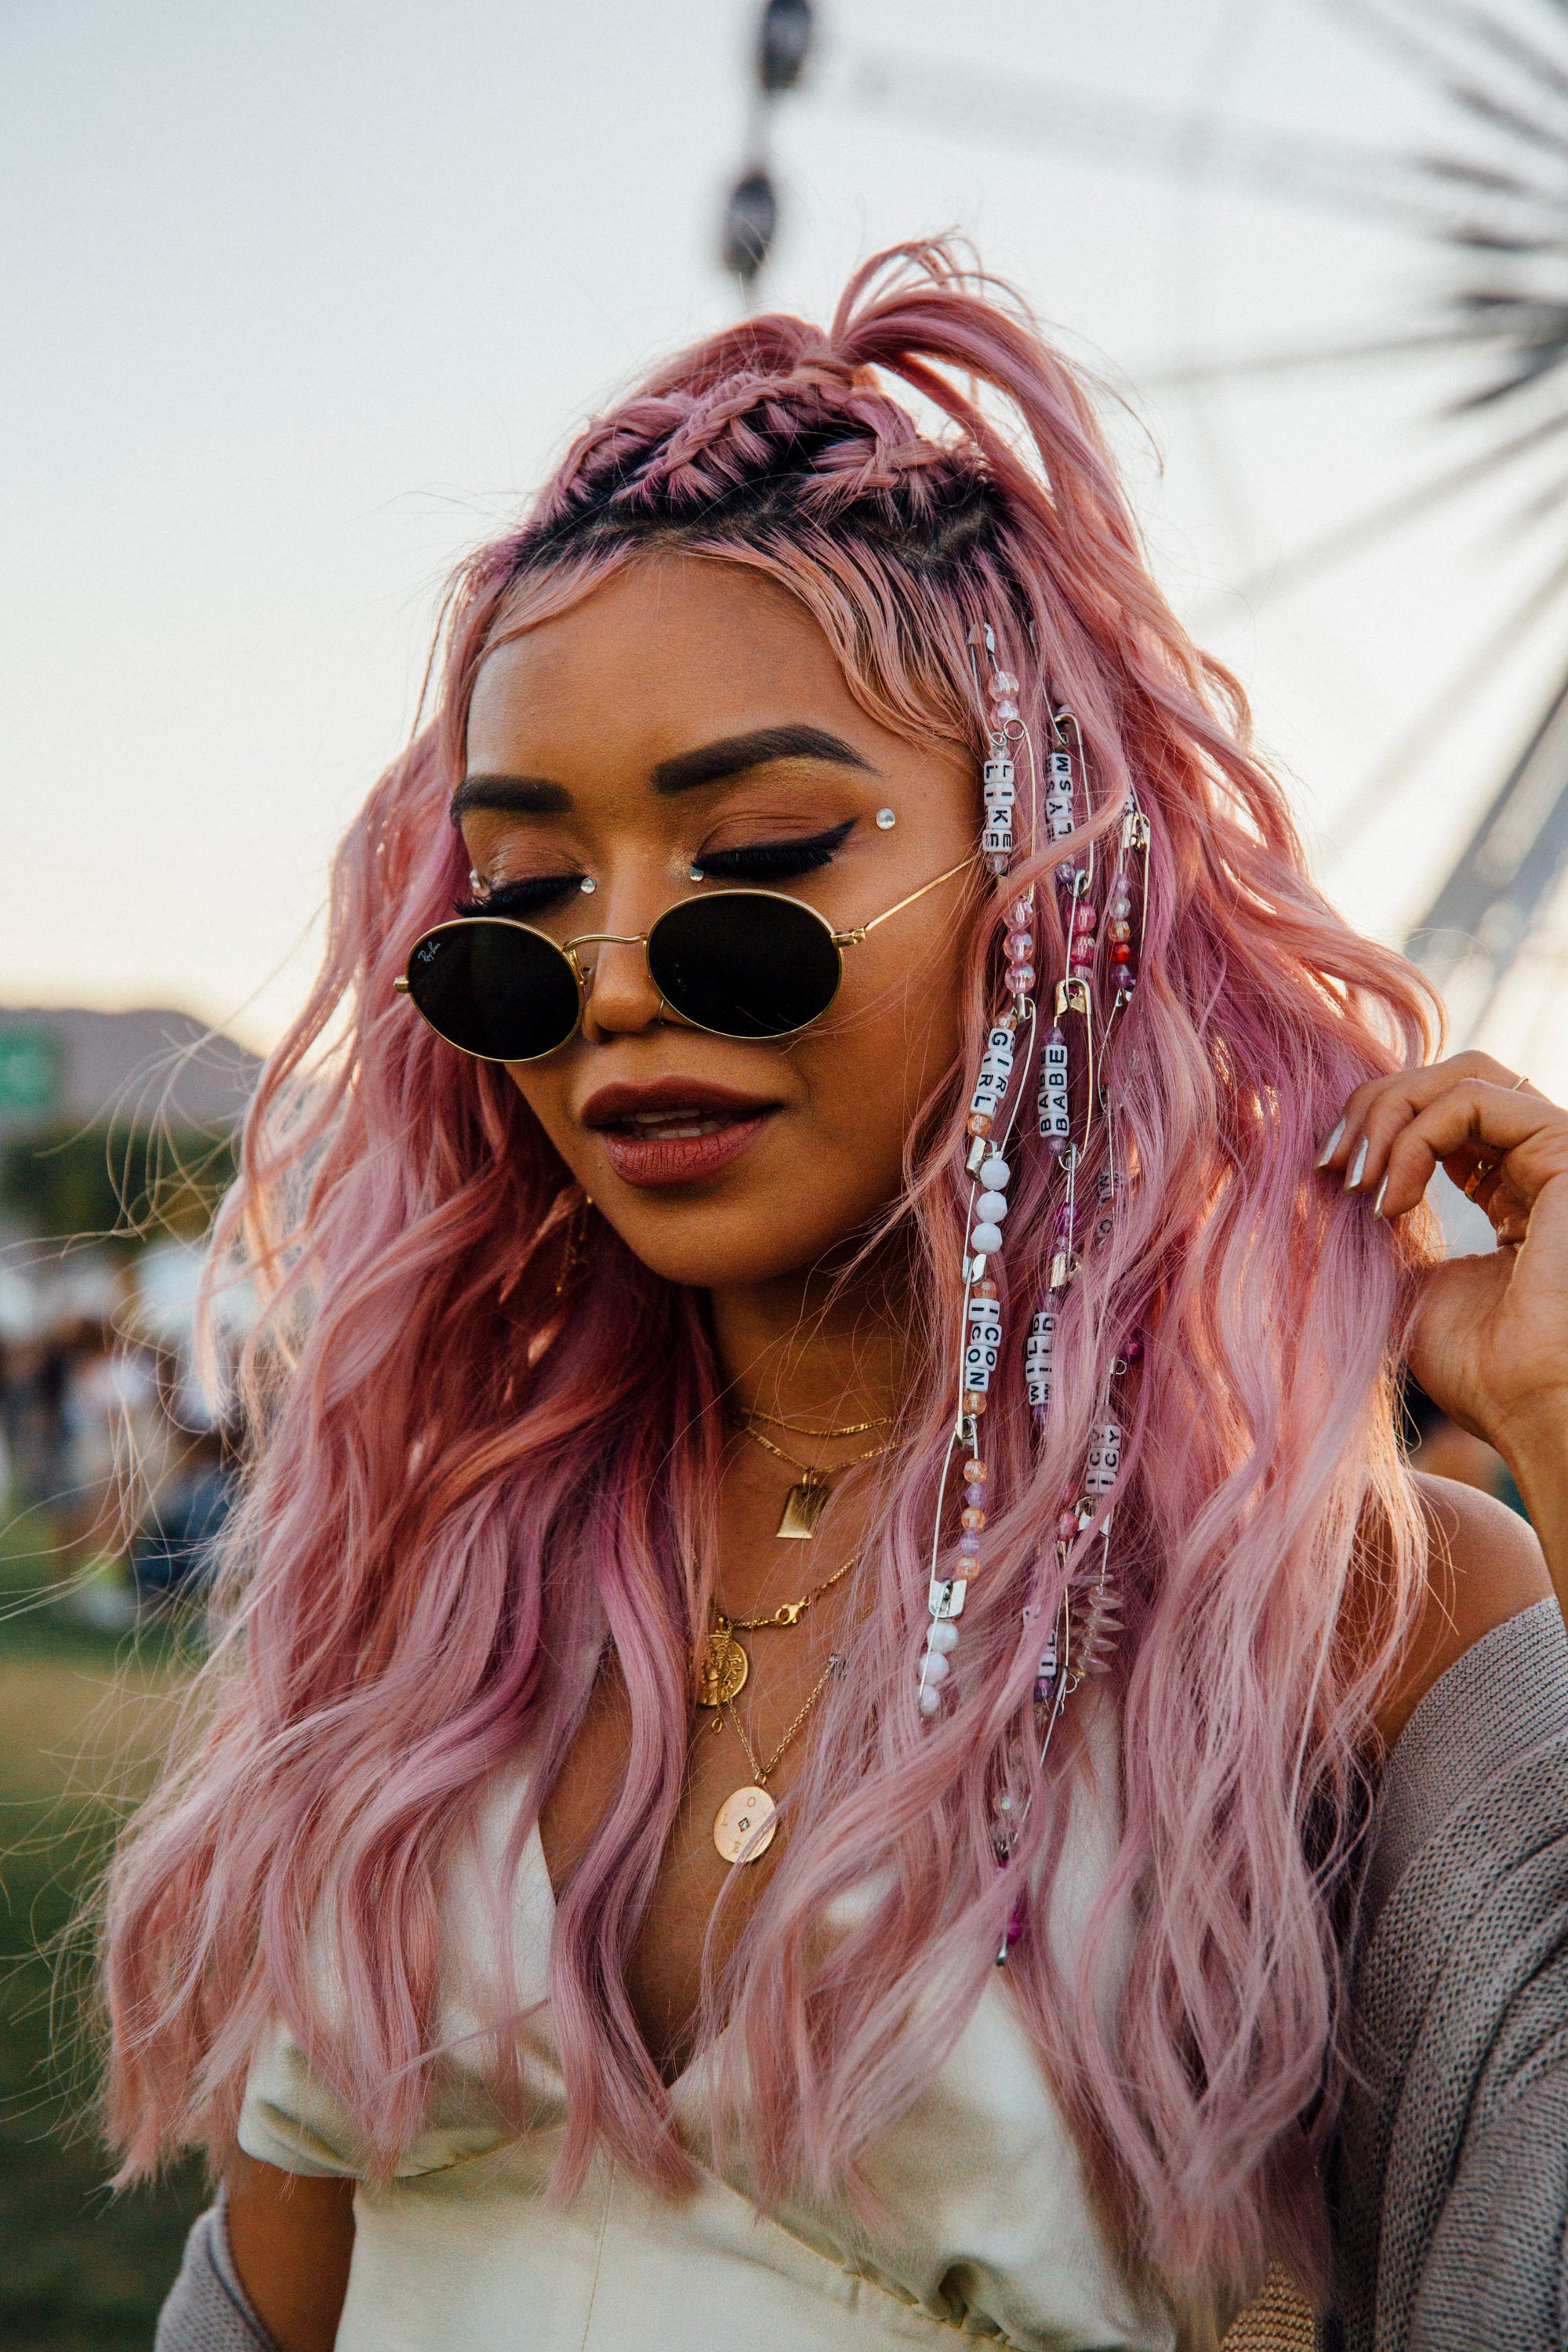 Coachella s Biggest Makeup Trend? Glitter, Glitter, & More Glitter